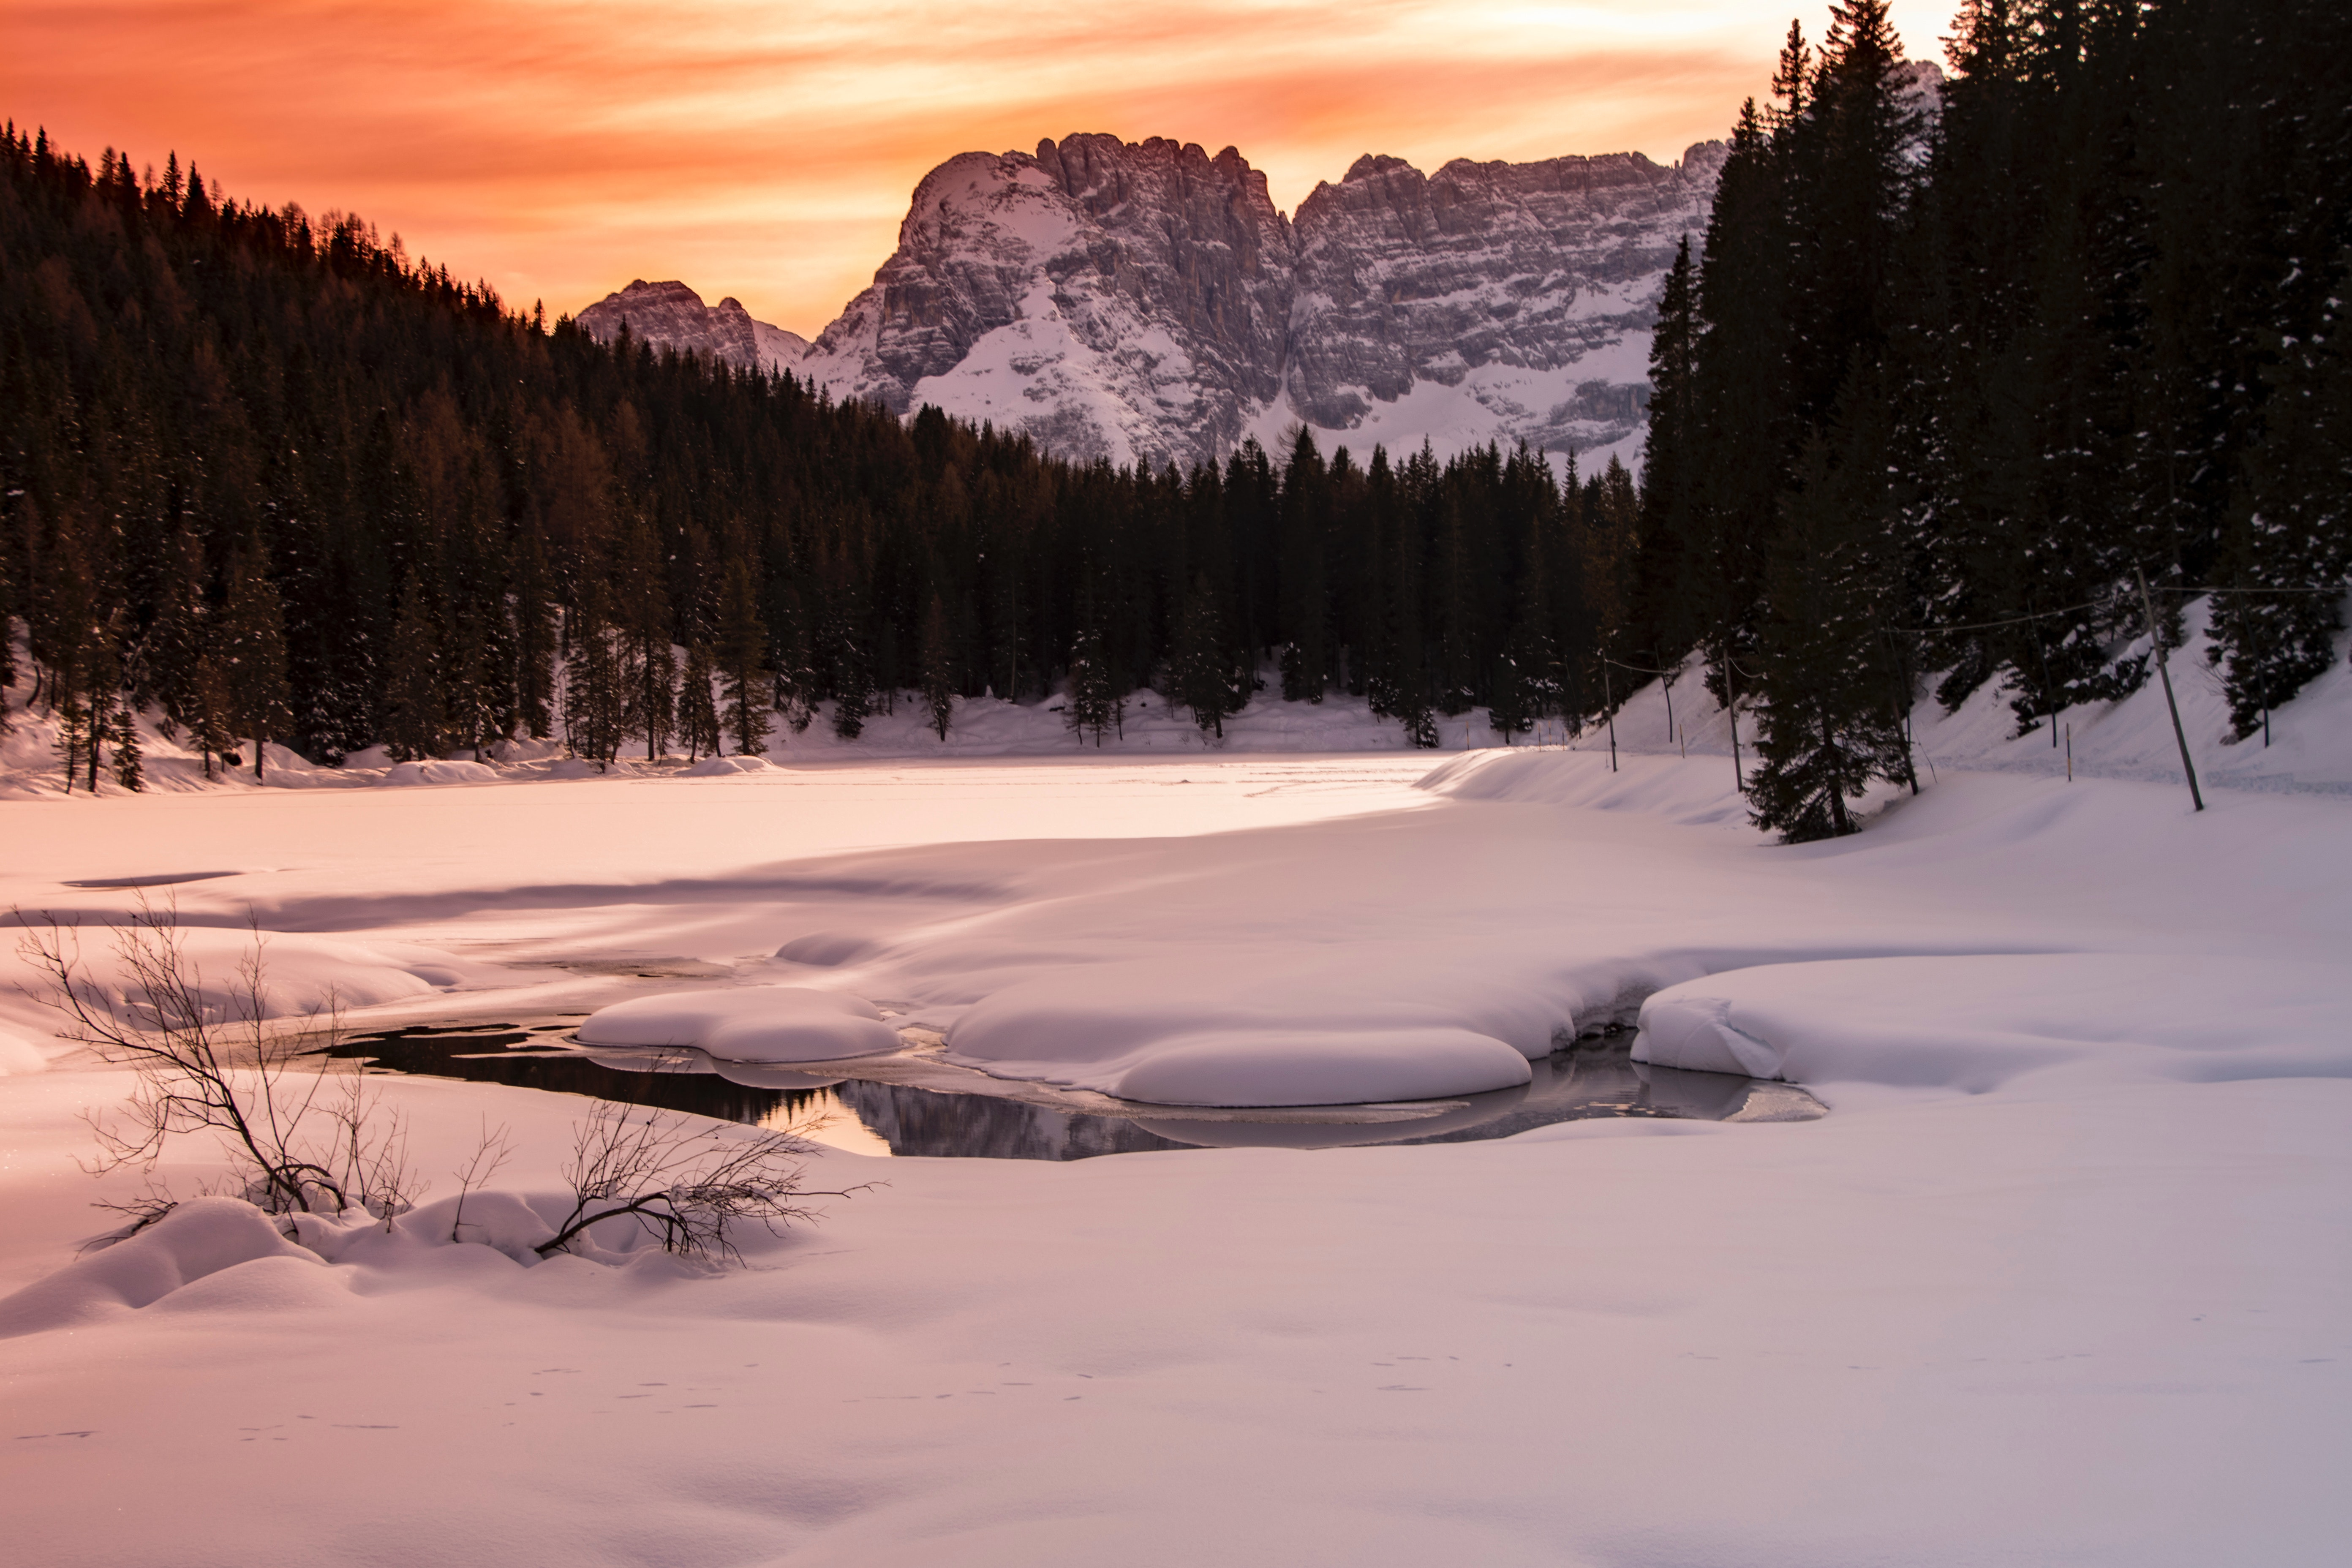 Landscape Photography Of Body Of Water Covered With Snow And Surrounded With Trees And Mountain, Cold, Scenic, Winter, Weather, HQ Photo